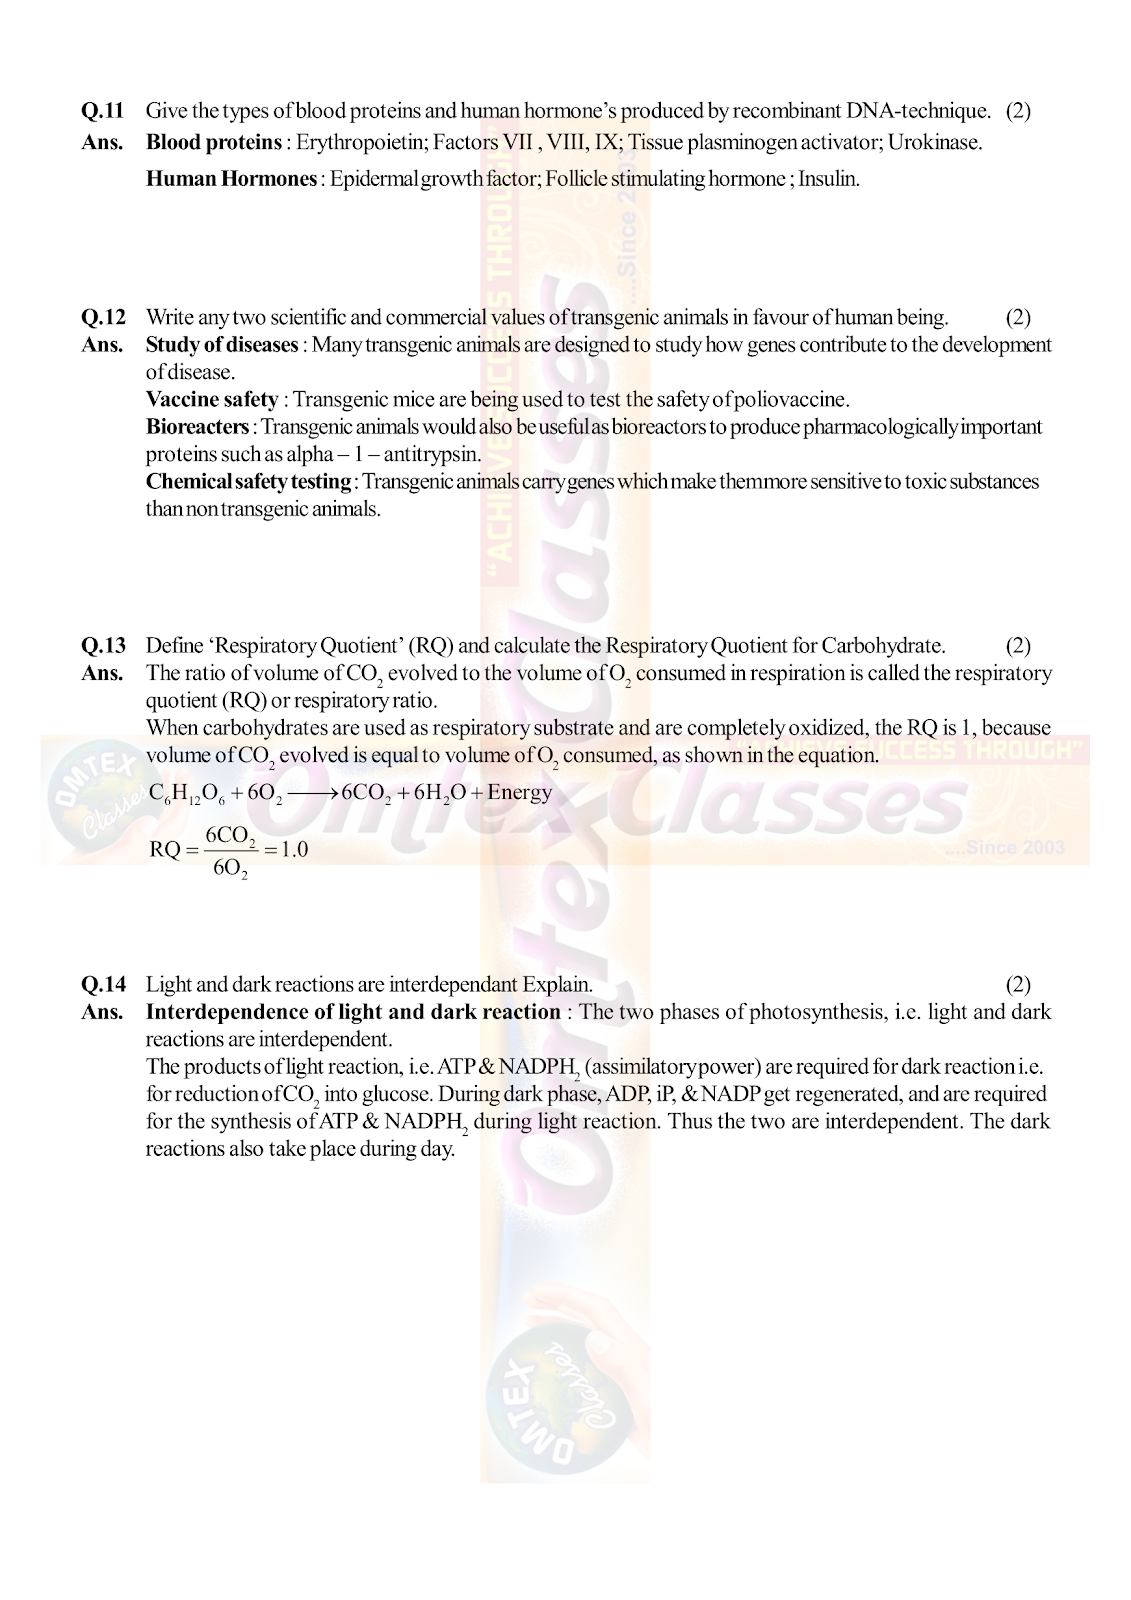 OMTEX CLASSES MAHARASHTRA : XII HSC - BOARD - MARCH - 2019 BIOLOGY